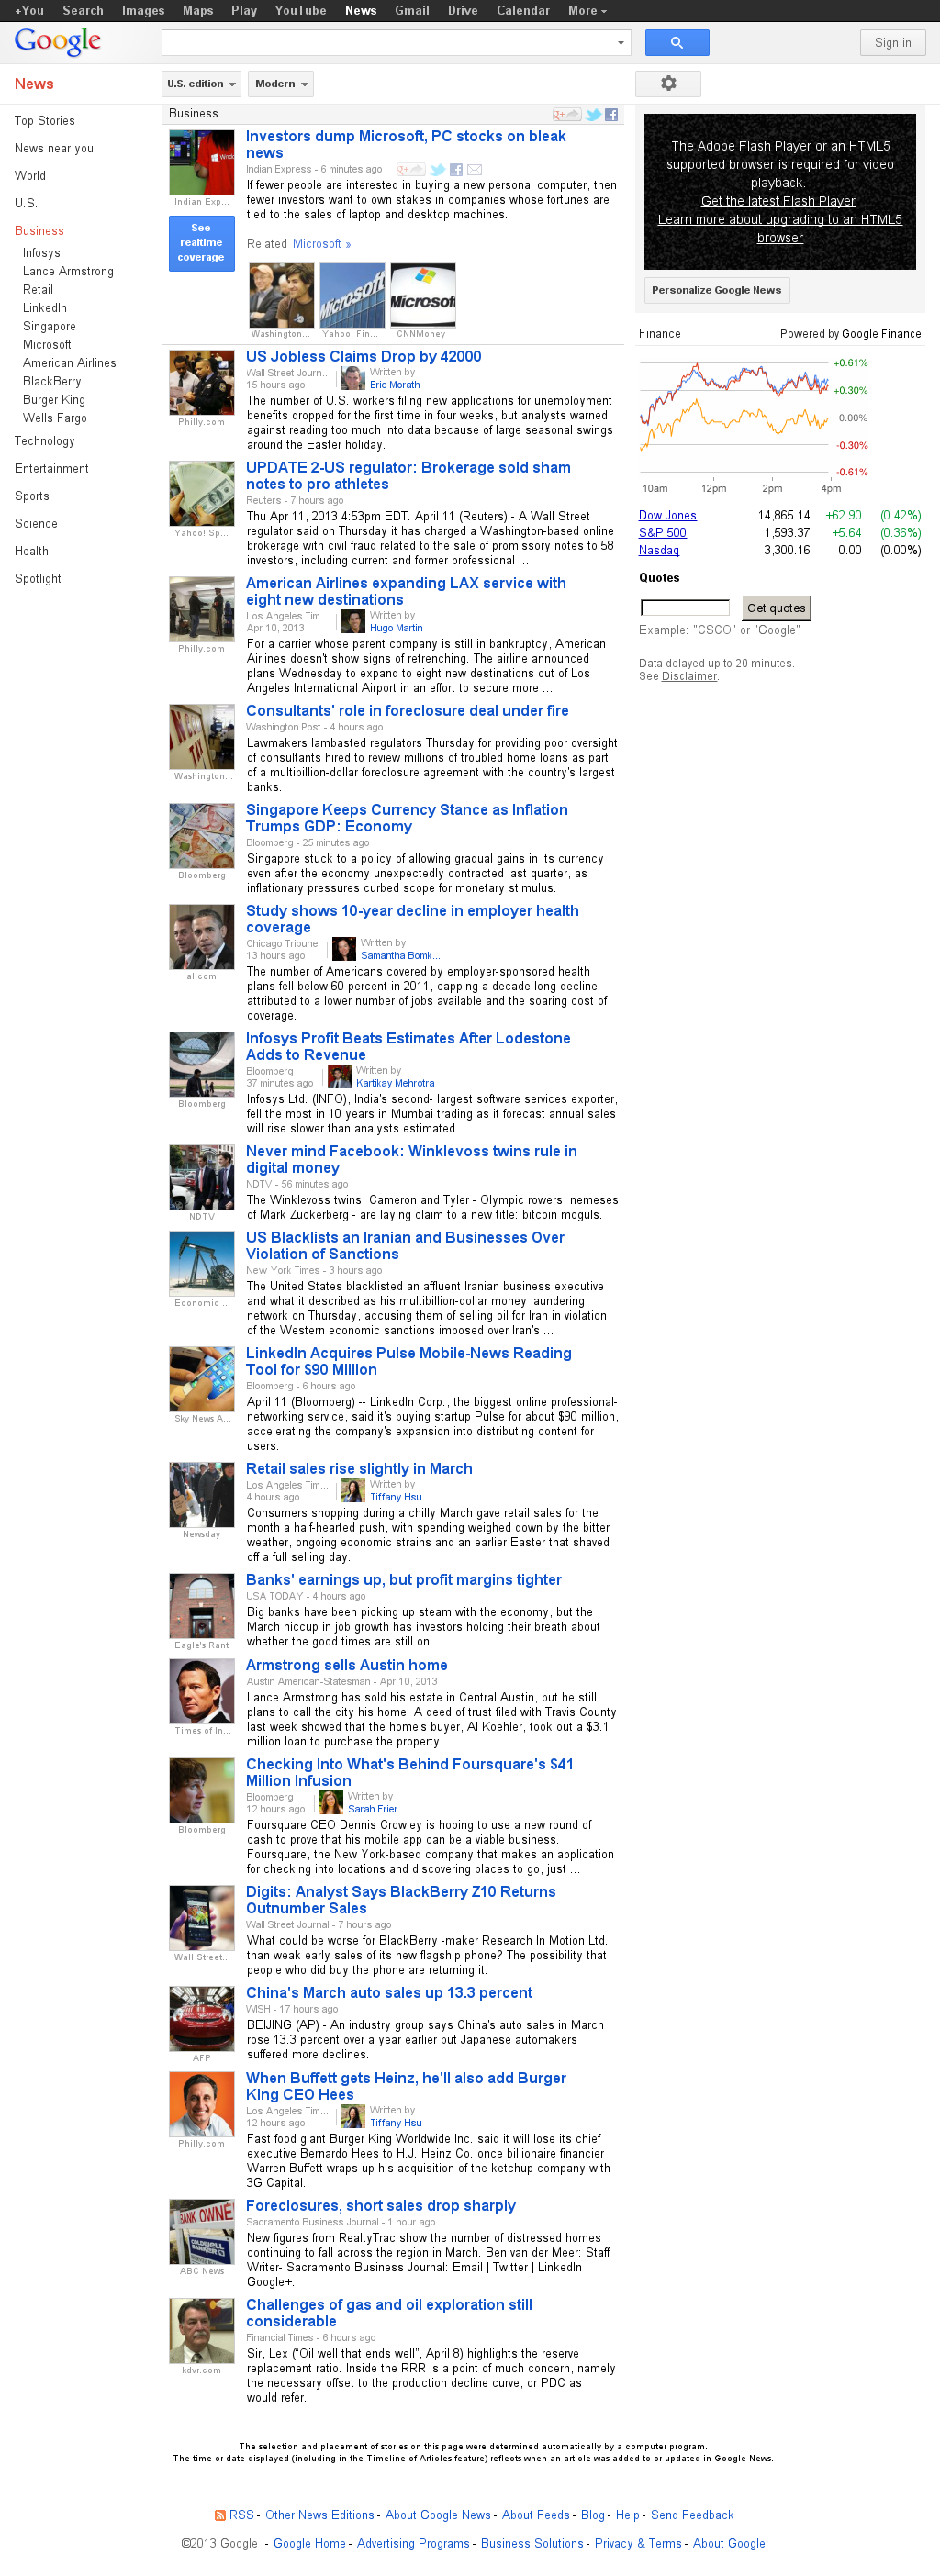 Google News: Business at Friday April 12, 2013, 4:10 a.m. UTC